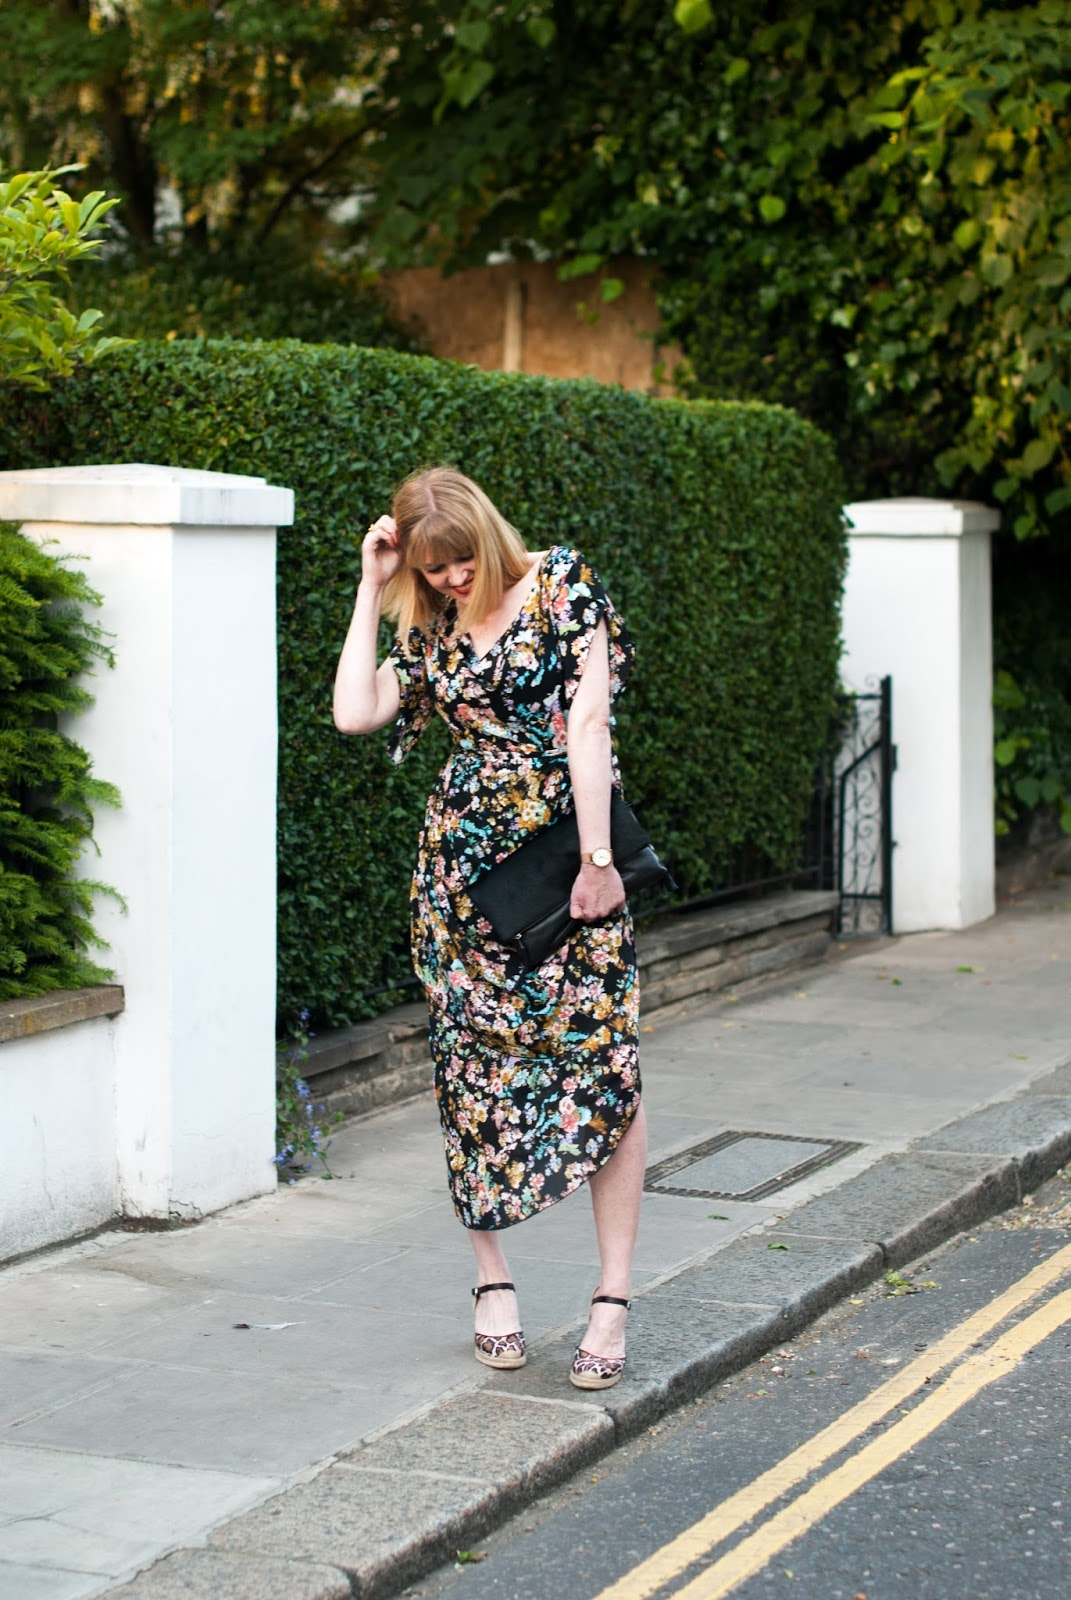 Floral draped vintage style dress with leopard  wedge print espadrilles and black clutch, over 40 style